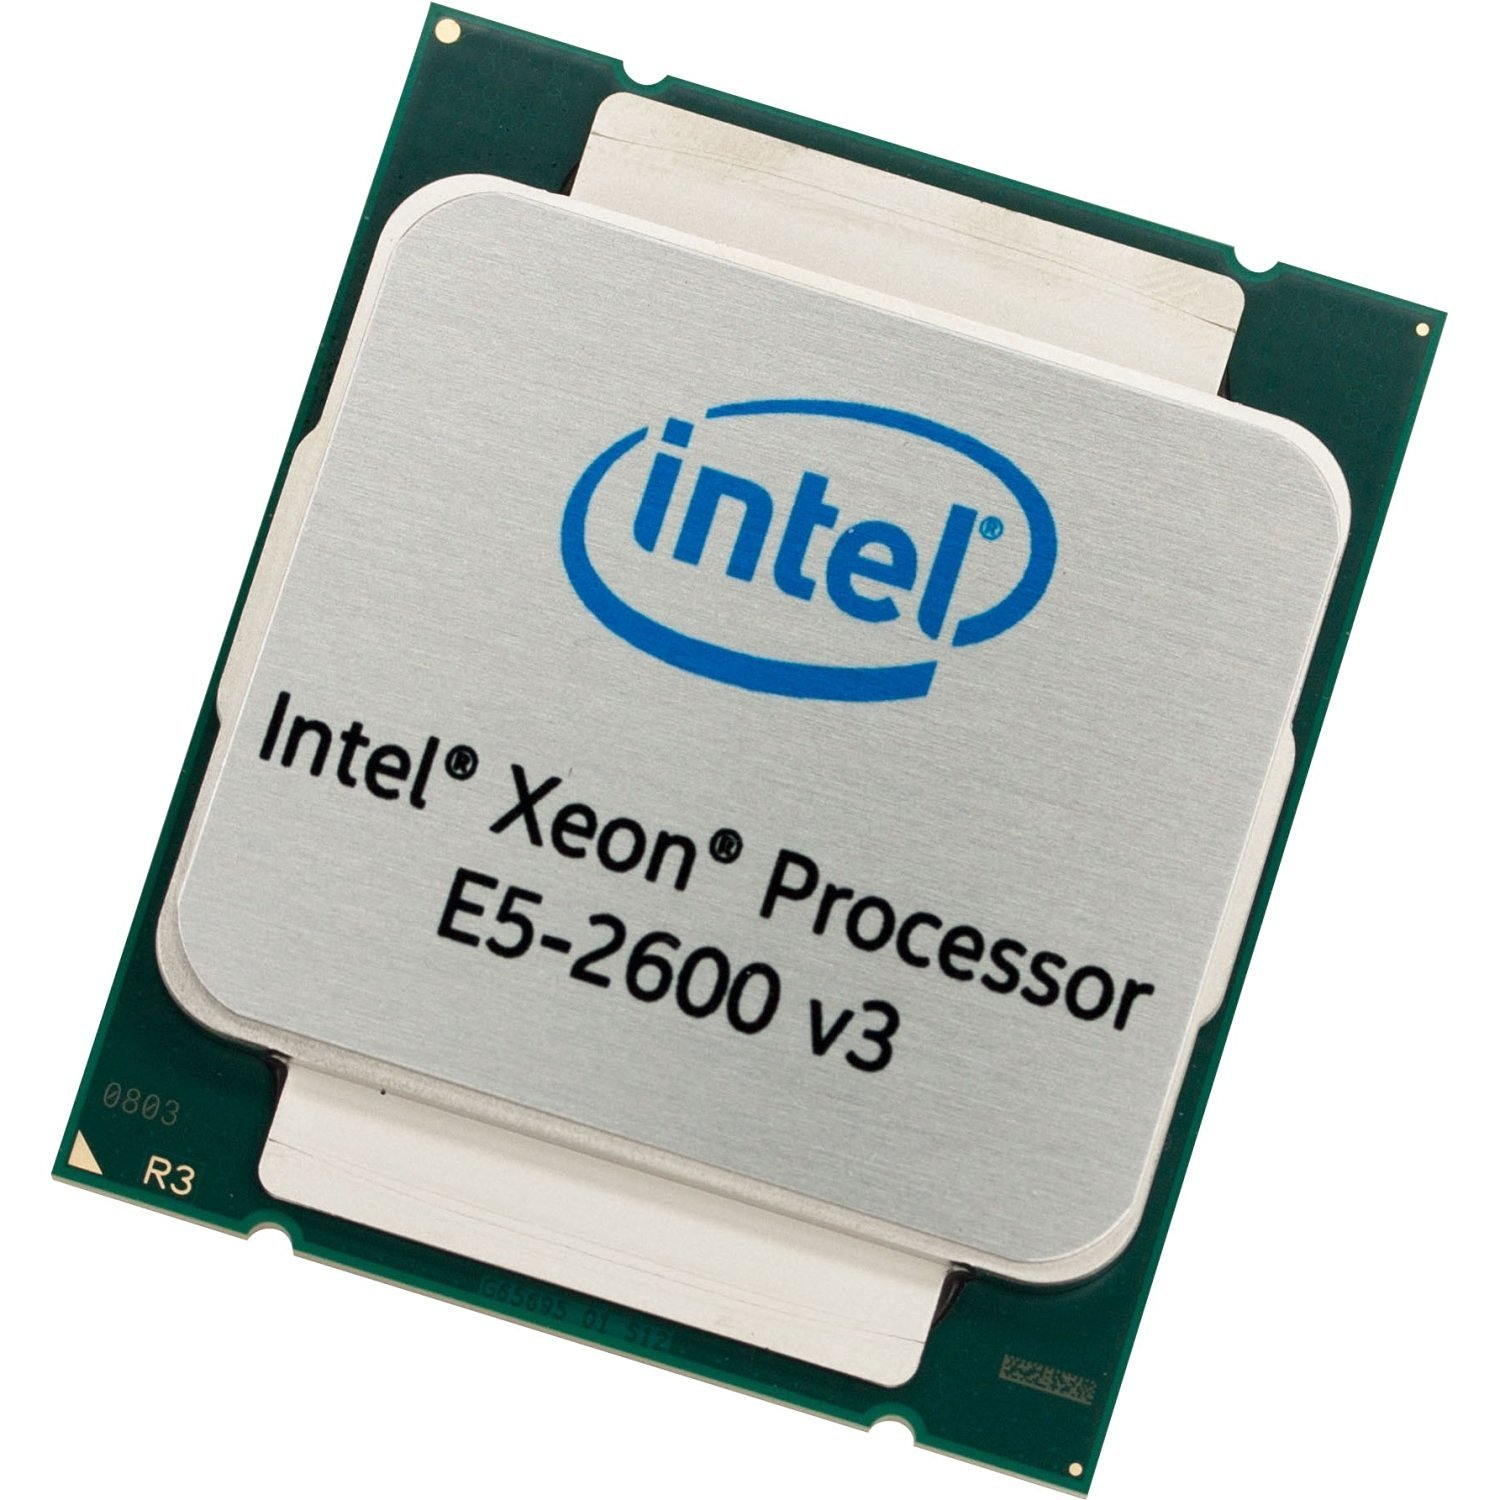 Intel BX80644E52650V3 Xeon E5-2650 v3 Deca-core (10 Core) 2.30 GHz Processor - Socket R3 (LGA2011-3) Retail Pack - 2.50 MB - 25 MB Cache - 5 GT/s DMI - Yes - 22 nm - 105 W